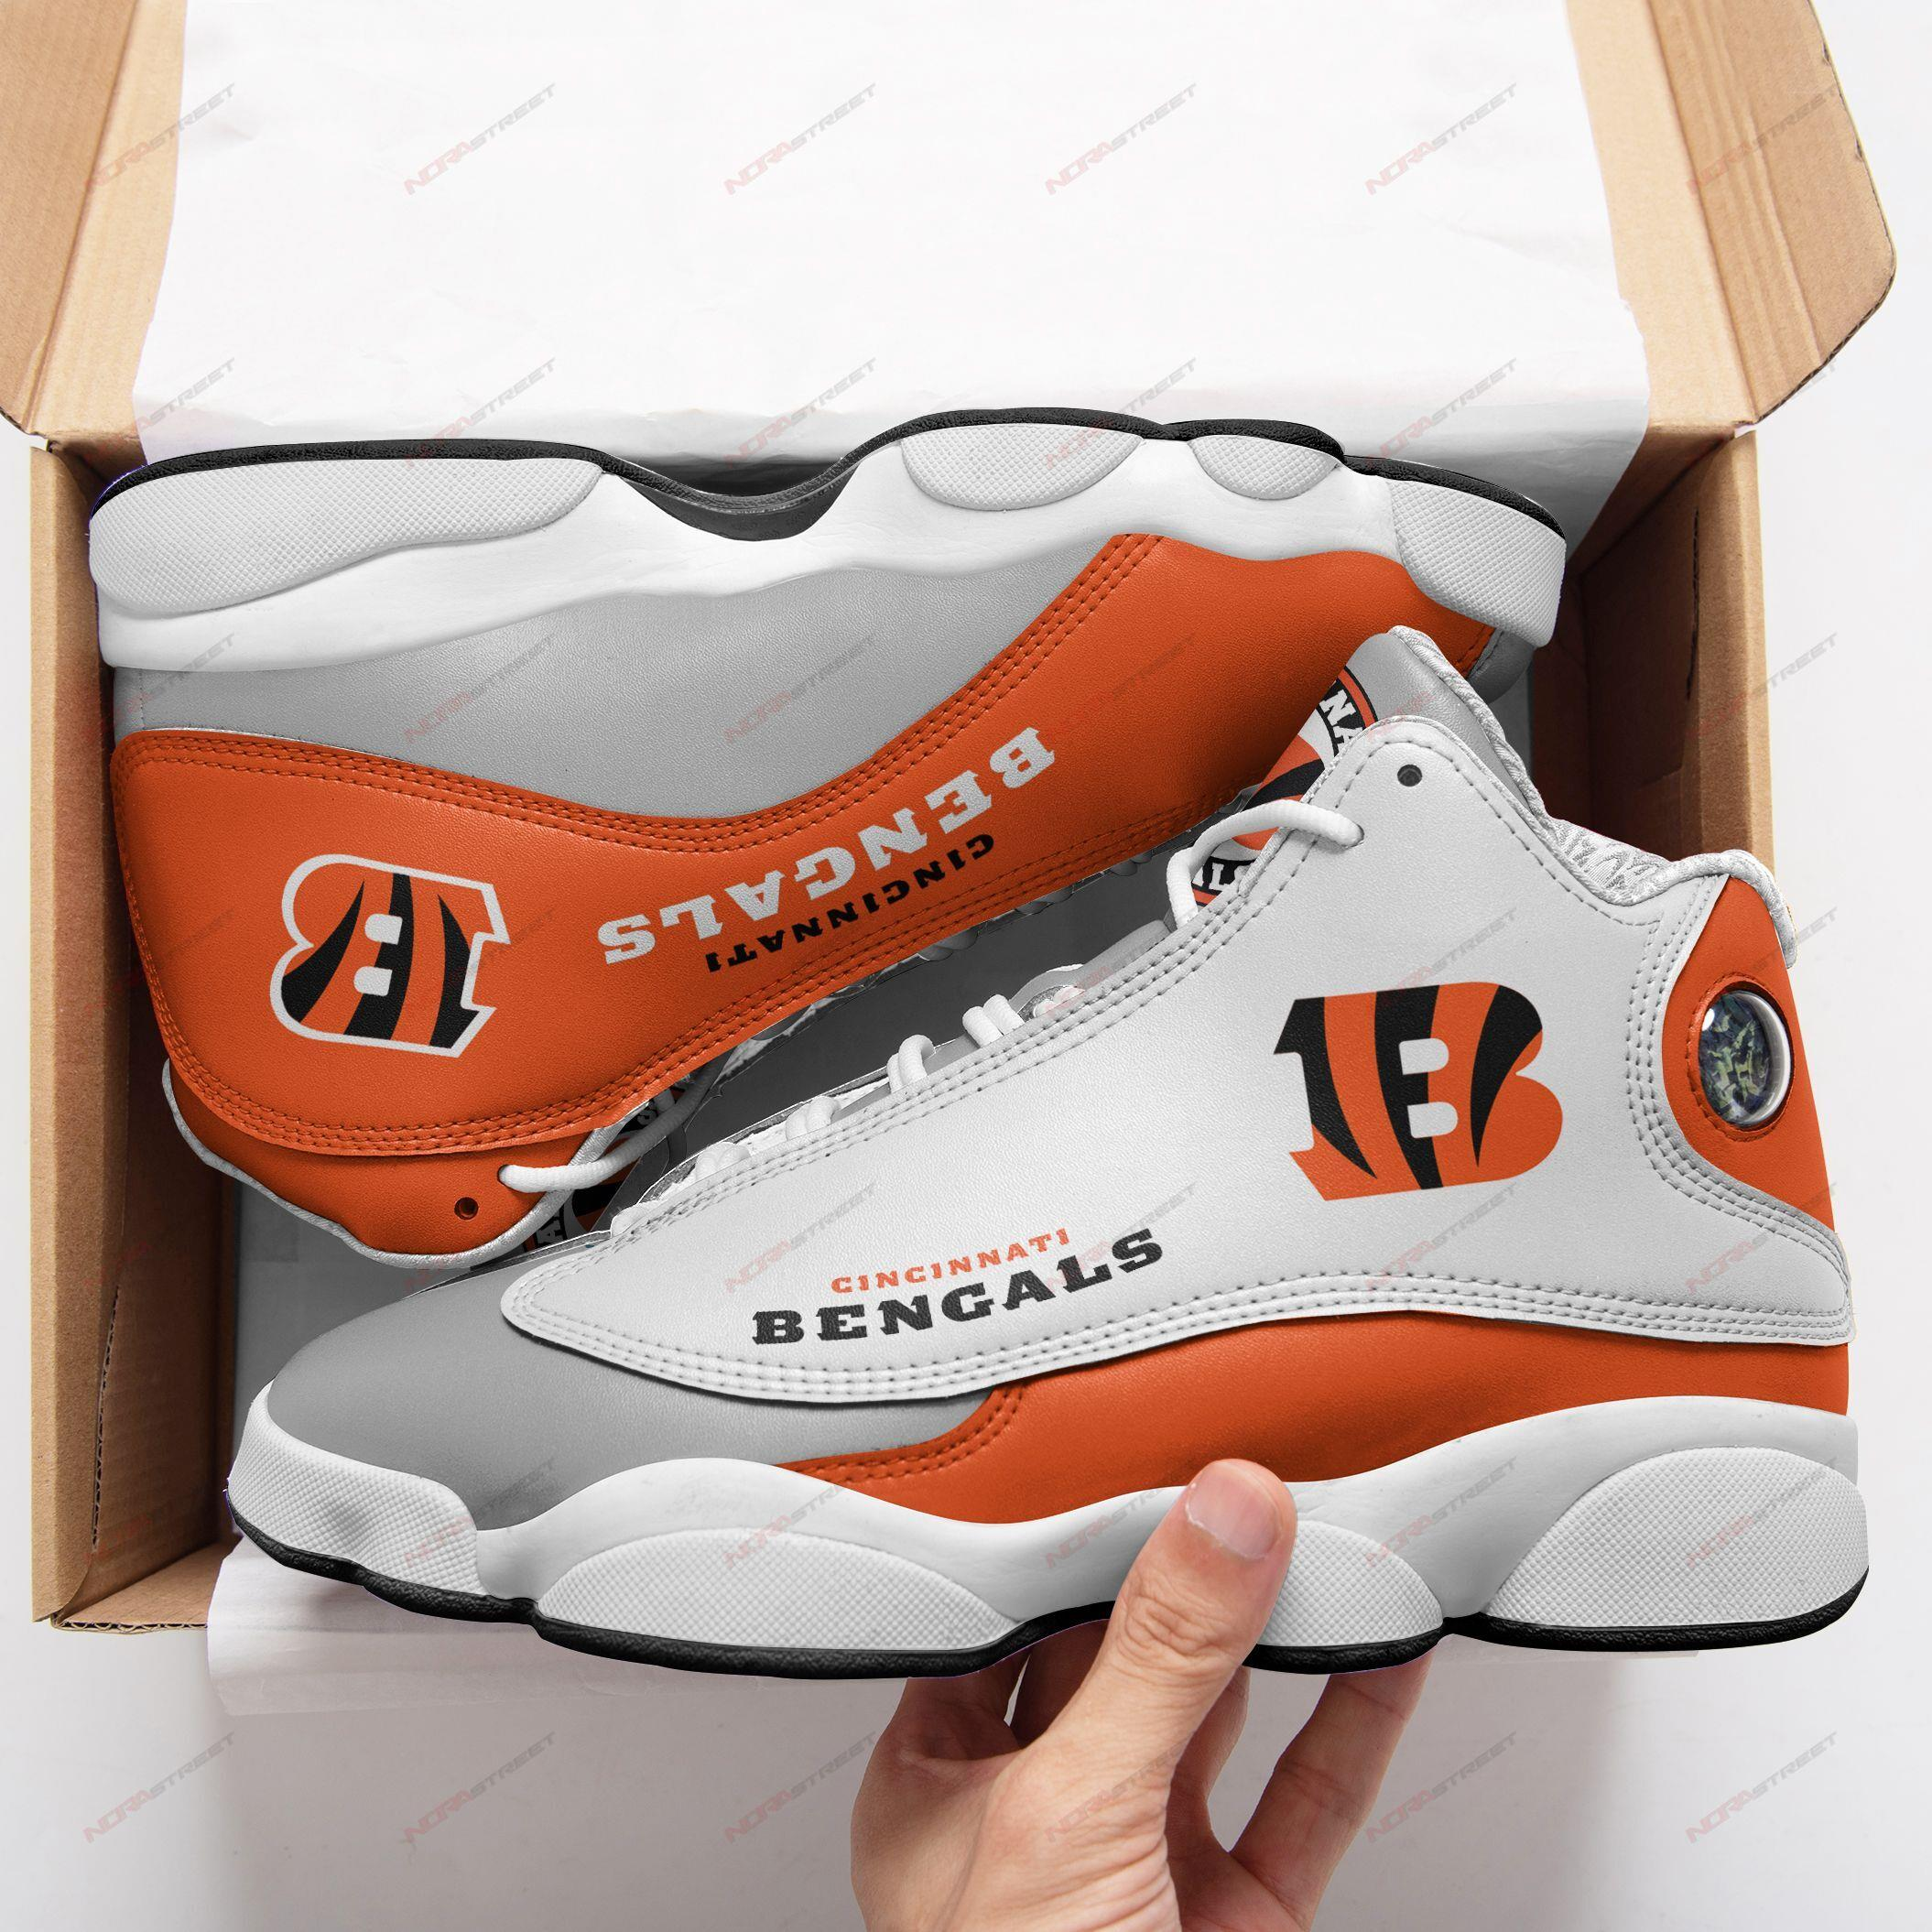 Cincinatti Bengals Air Jordan 13 Sneakers Sport Shoes Full Size